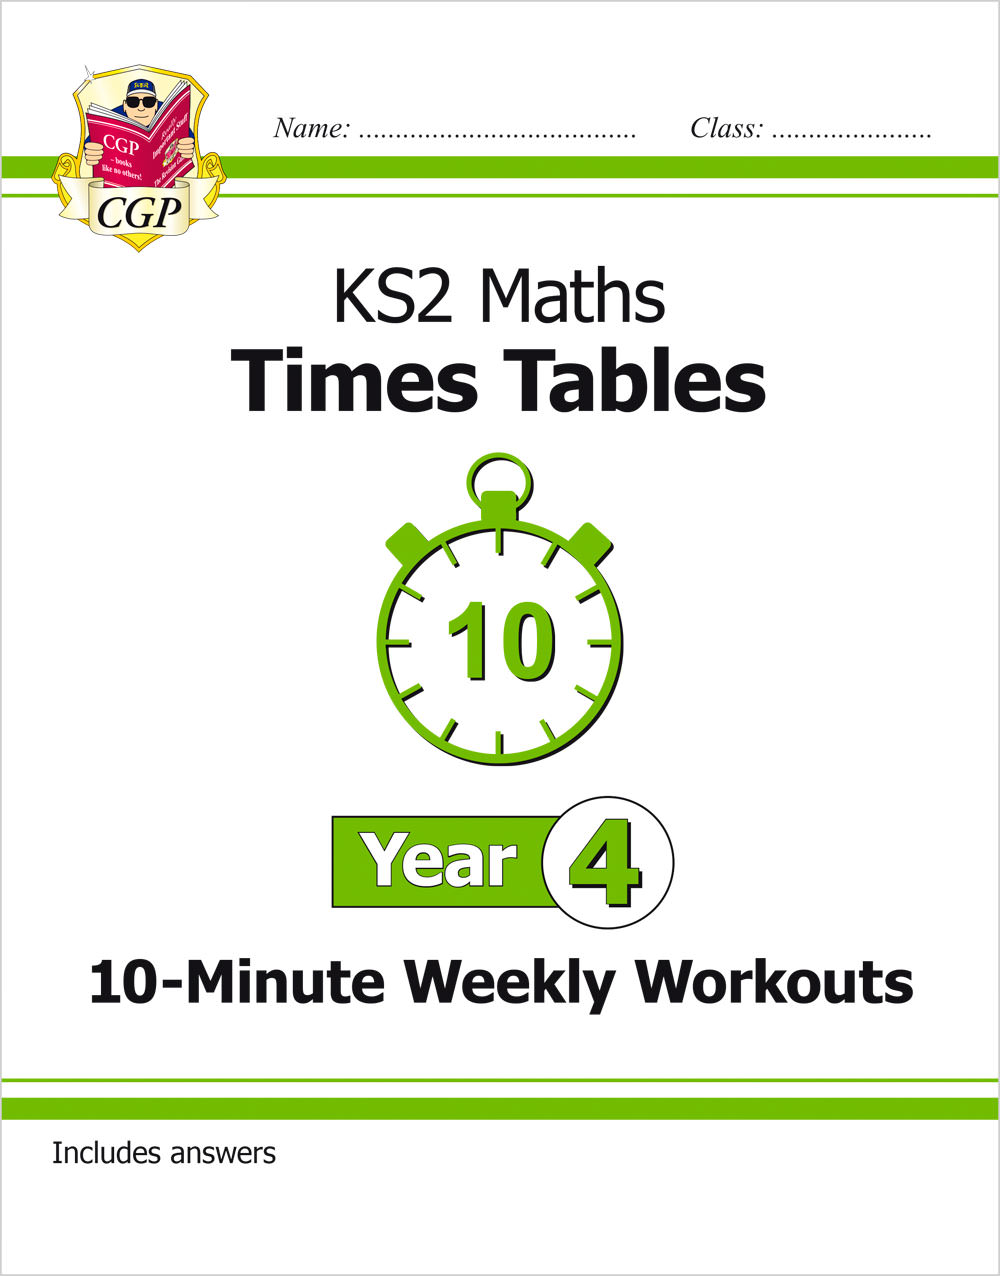 M4TXW21 - KS2 Maths: Times Tables 10-Minute Weekly Workouts - Year 4